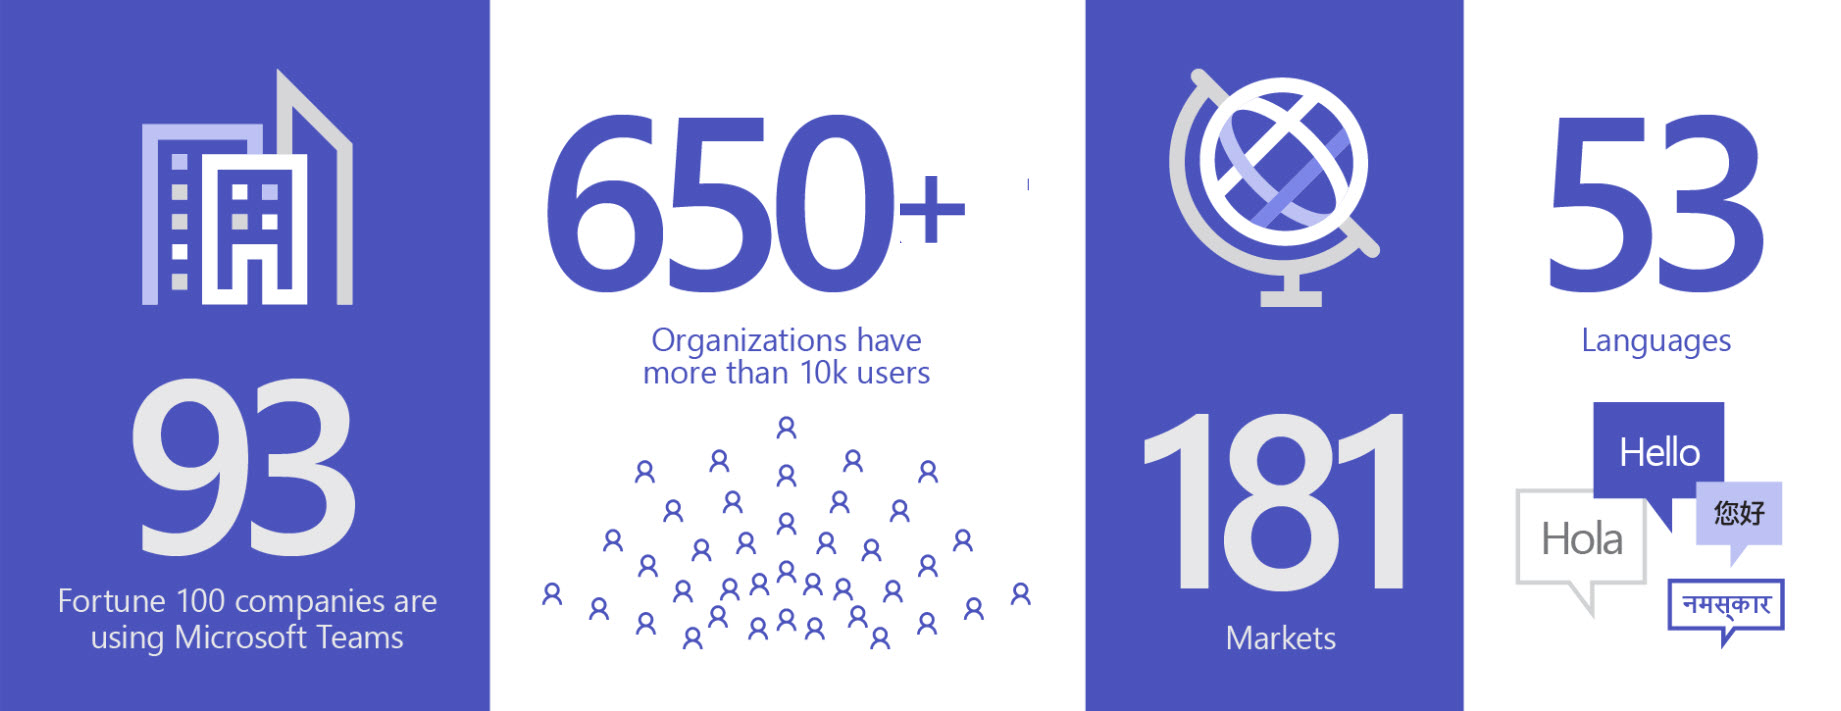 Image showing 93 organizations using Teams, 650+ organizations have more than 10K users, in 181 markets, and 53 languages.